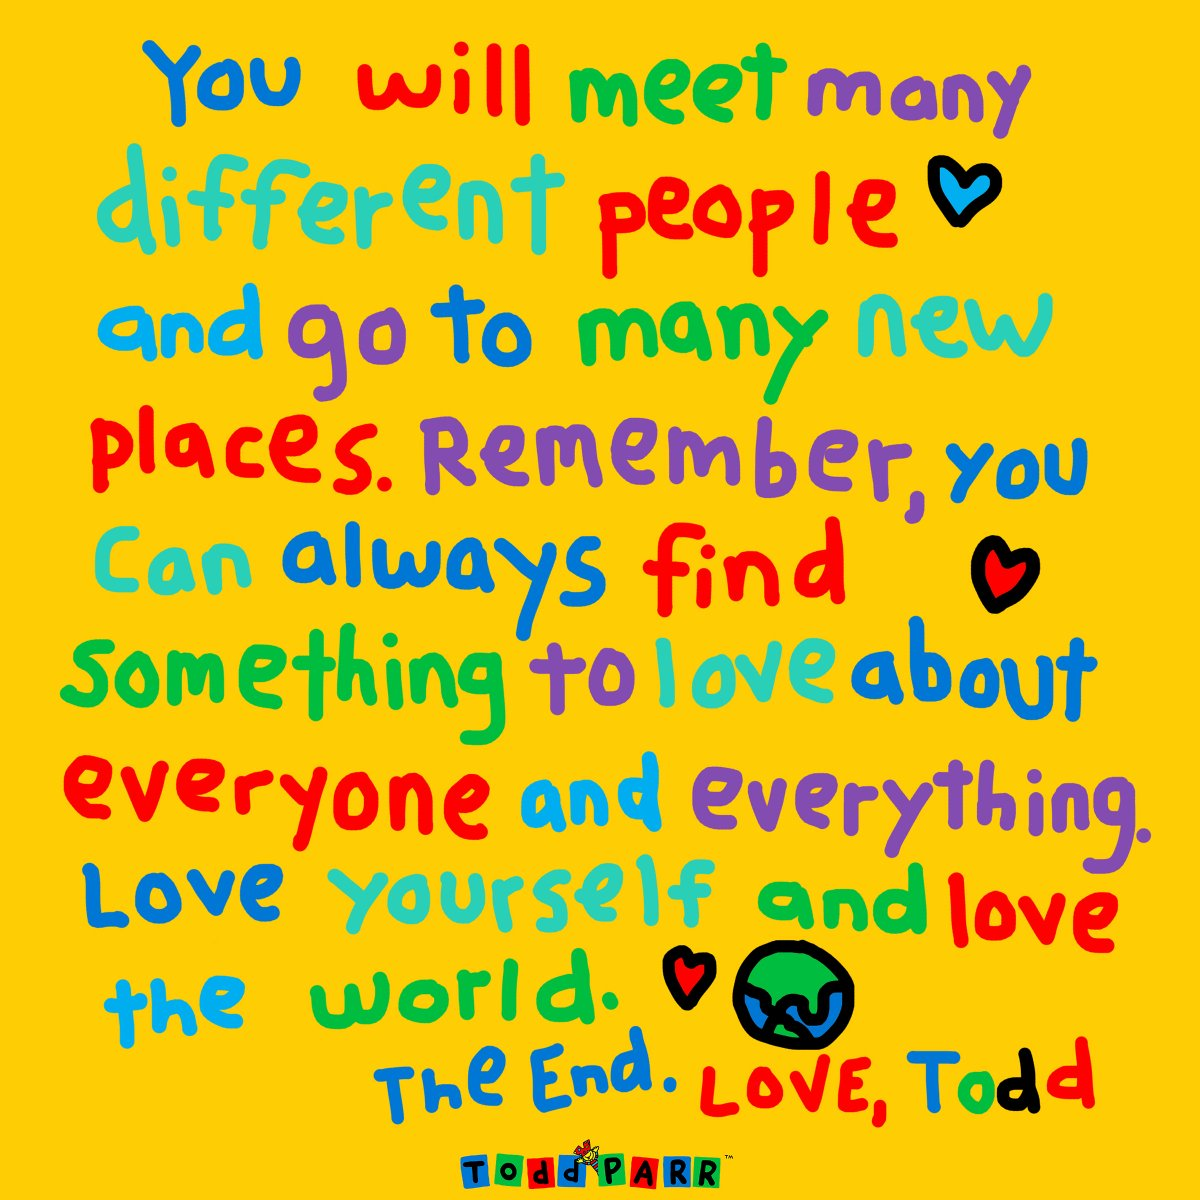 Have a good week everyone! #MondayMotivation #LoveTheWorld #ToddParrBooks #love #kindness #ItsJustThatSimple https://t.co/f1cRbCMfH7